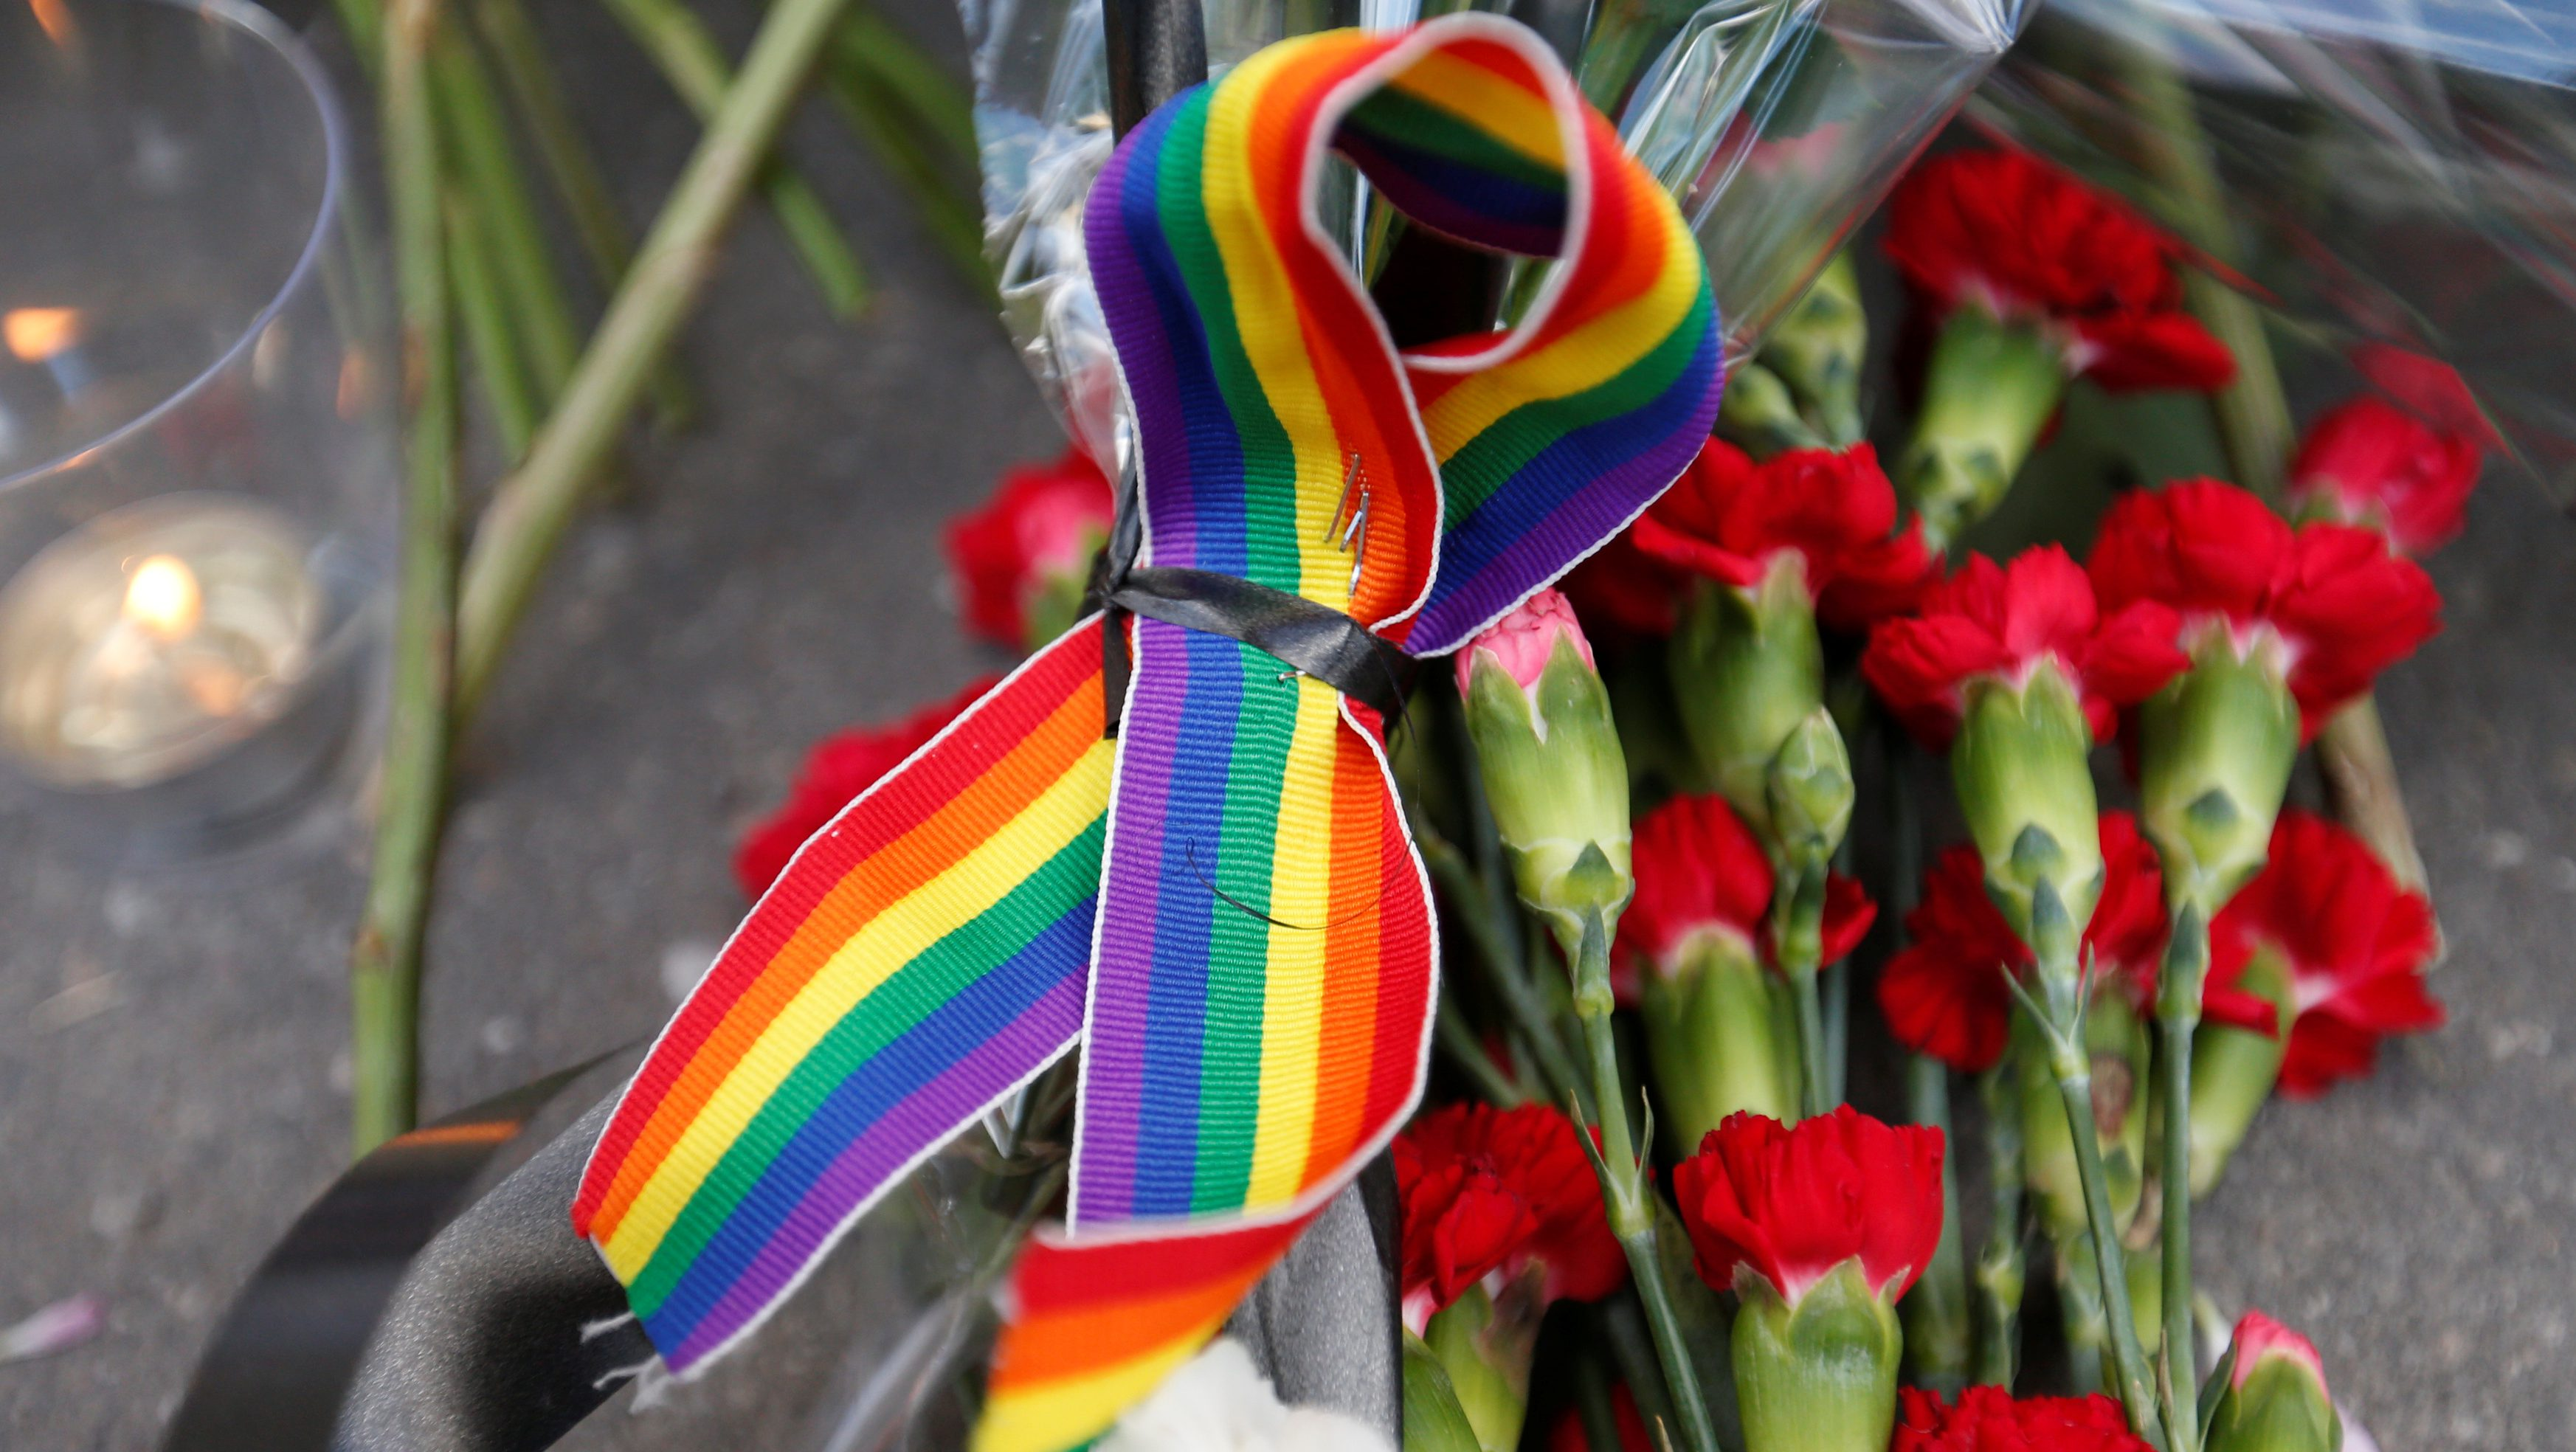 A rainbow ribbon, a candle and flowers for the victims of the shooting at a gay nightclub in Orlando are seen in front of the U.S. Embassy in Moscow, Russia, June 13, 2016. REUTERS/Maxim Zmeyev - RTX2G011